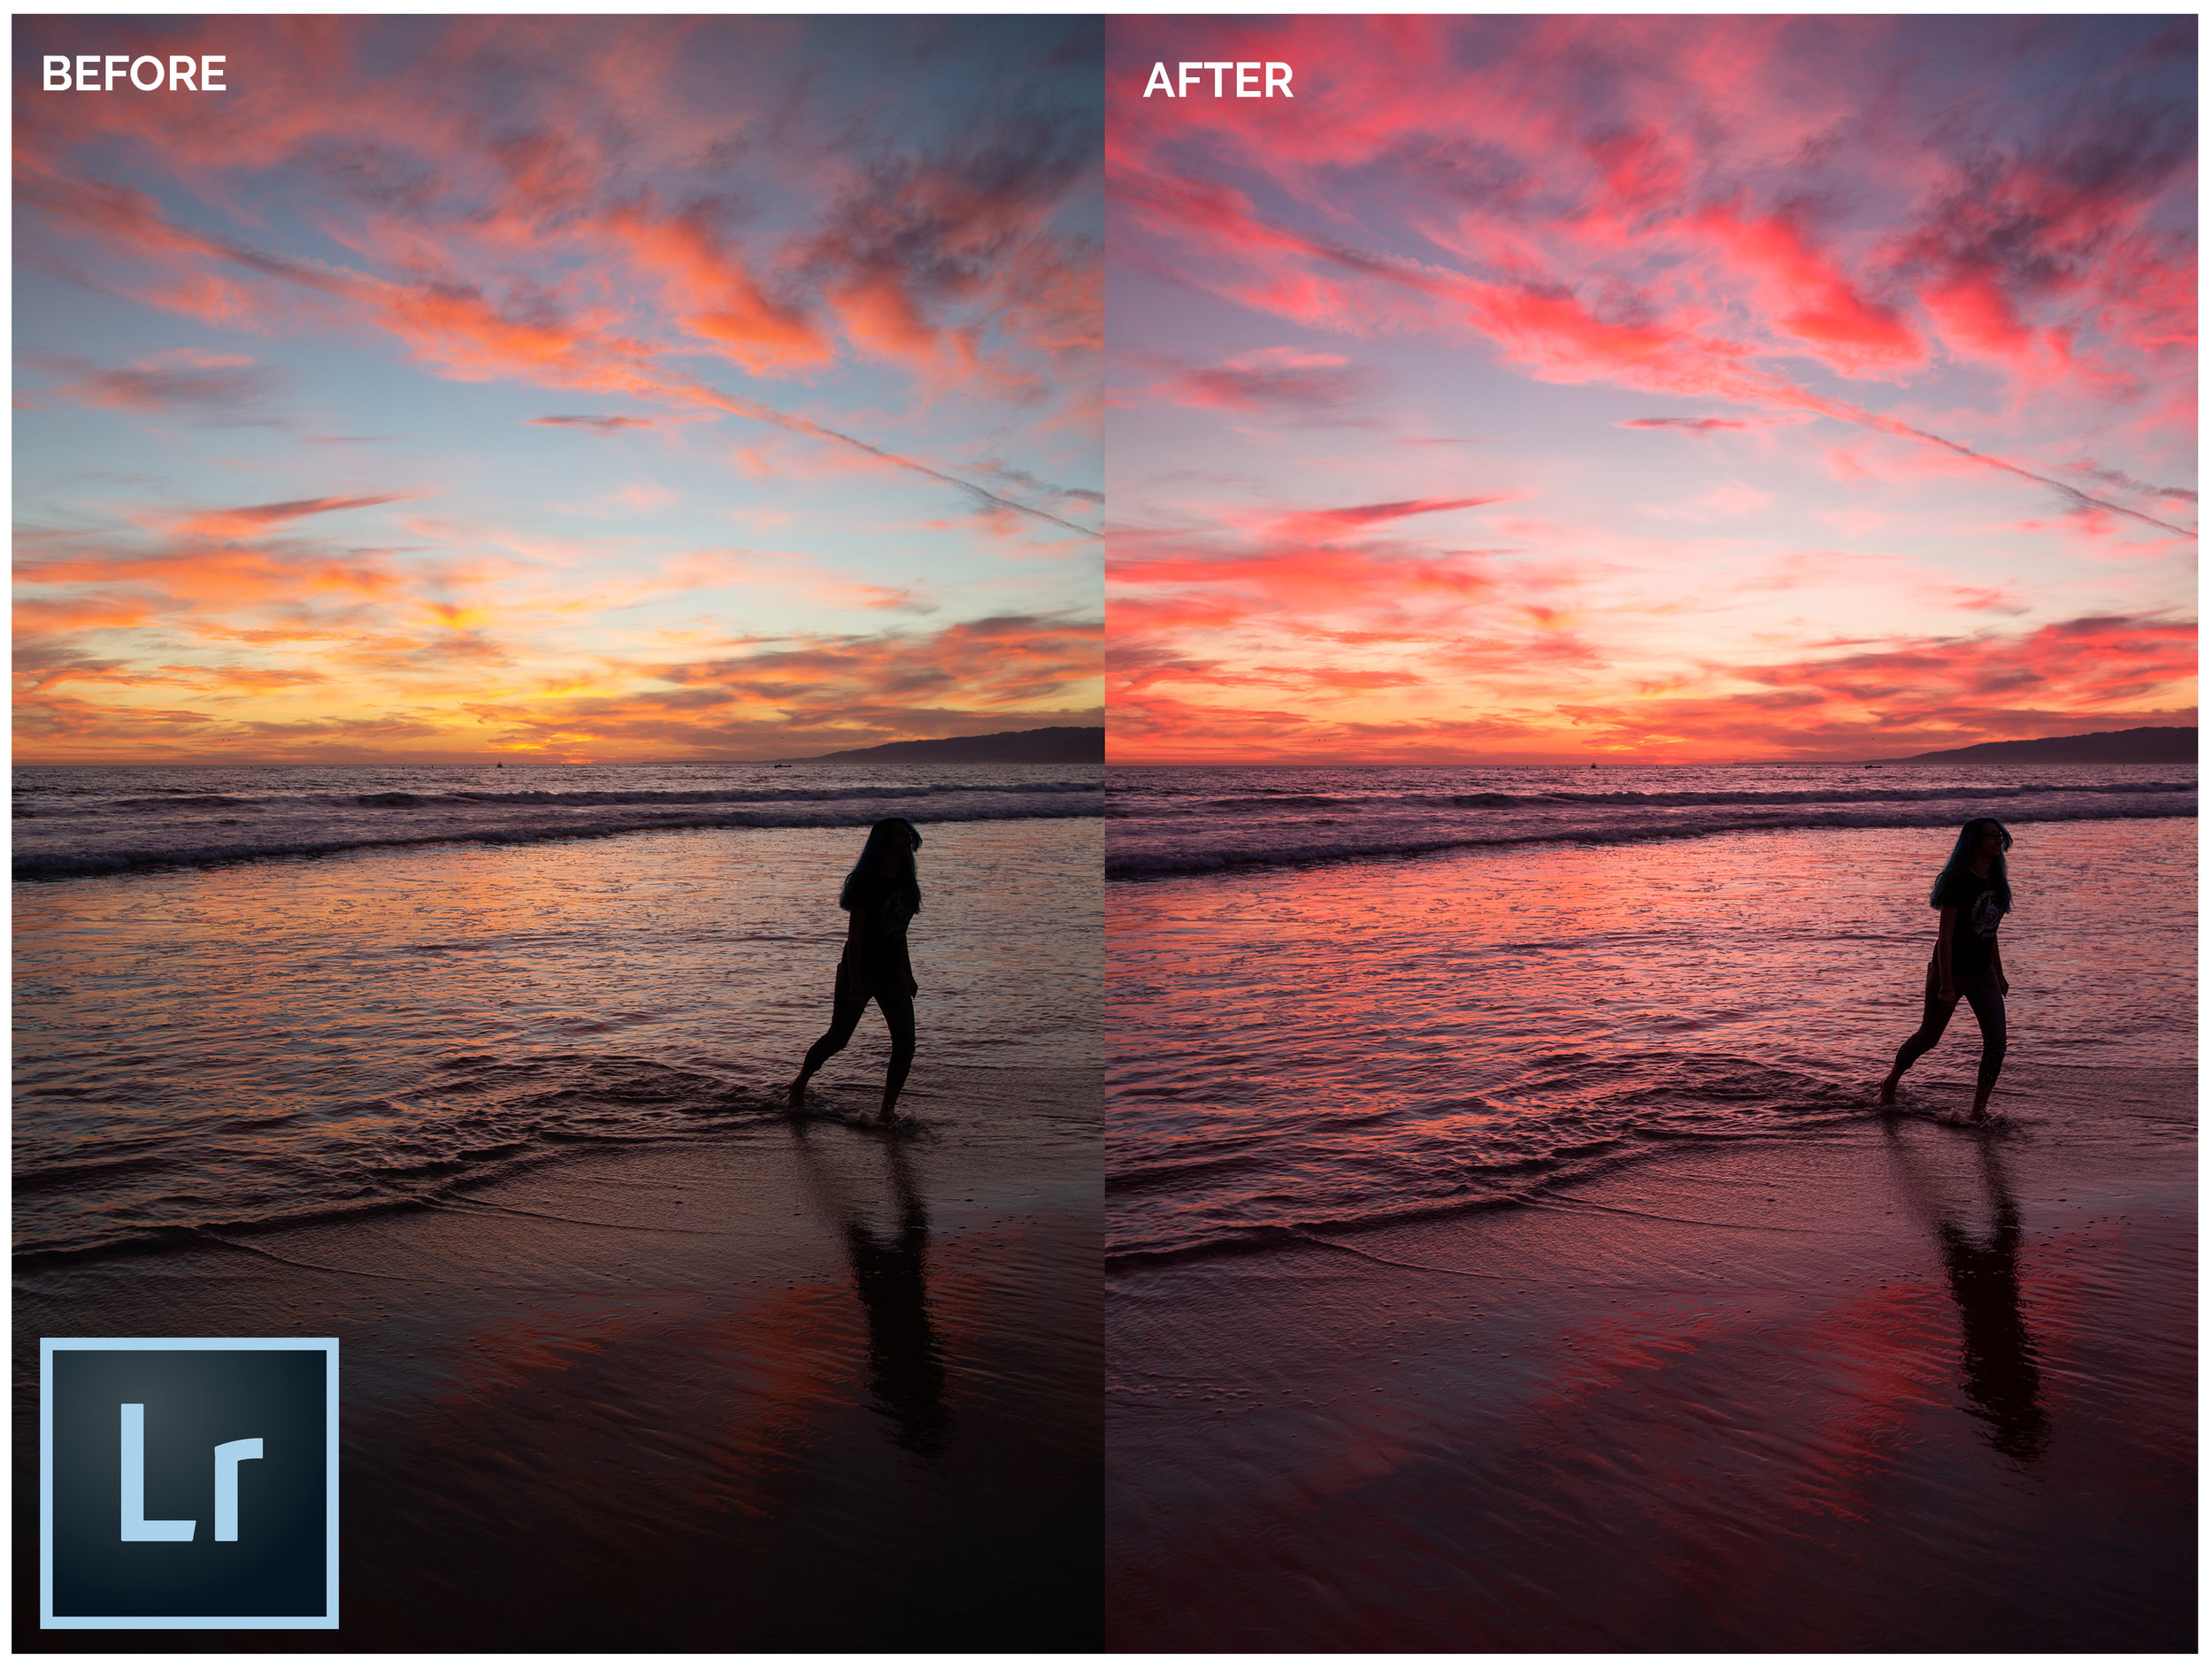 Free Lightroom Presets - Sunset Image